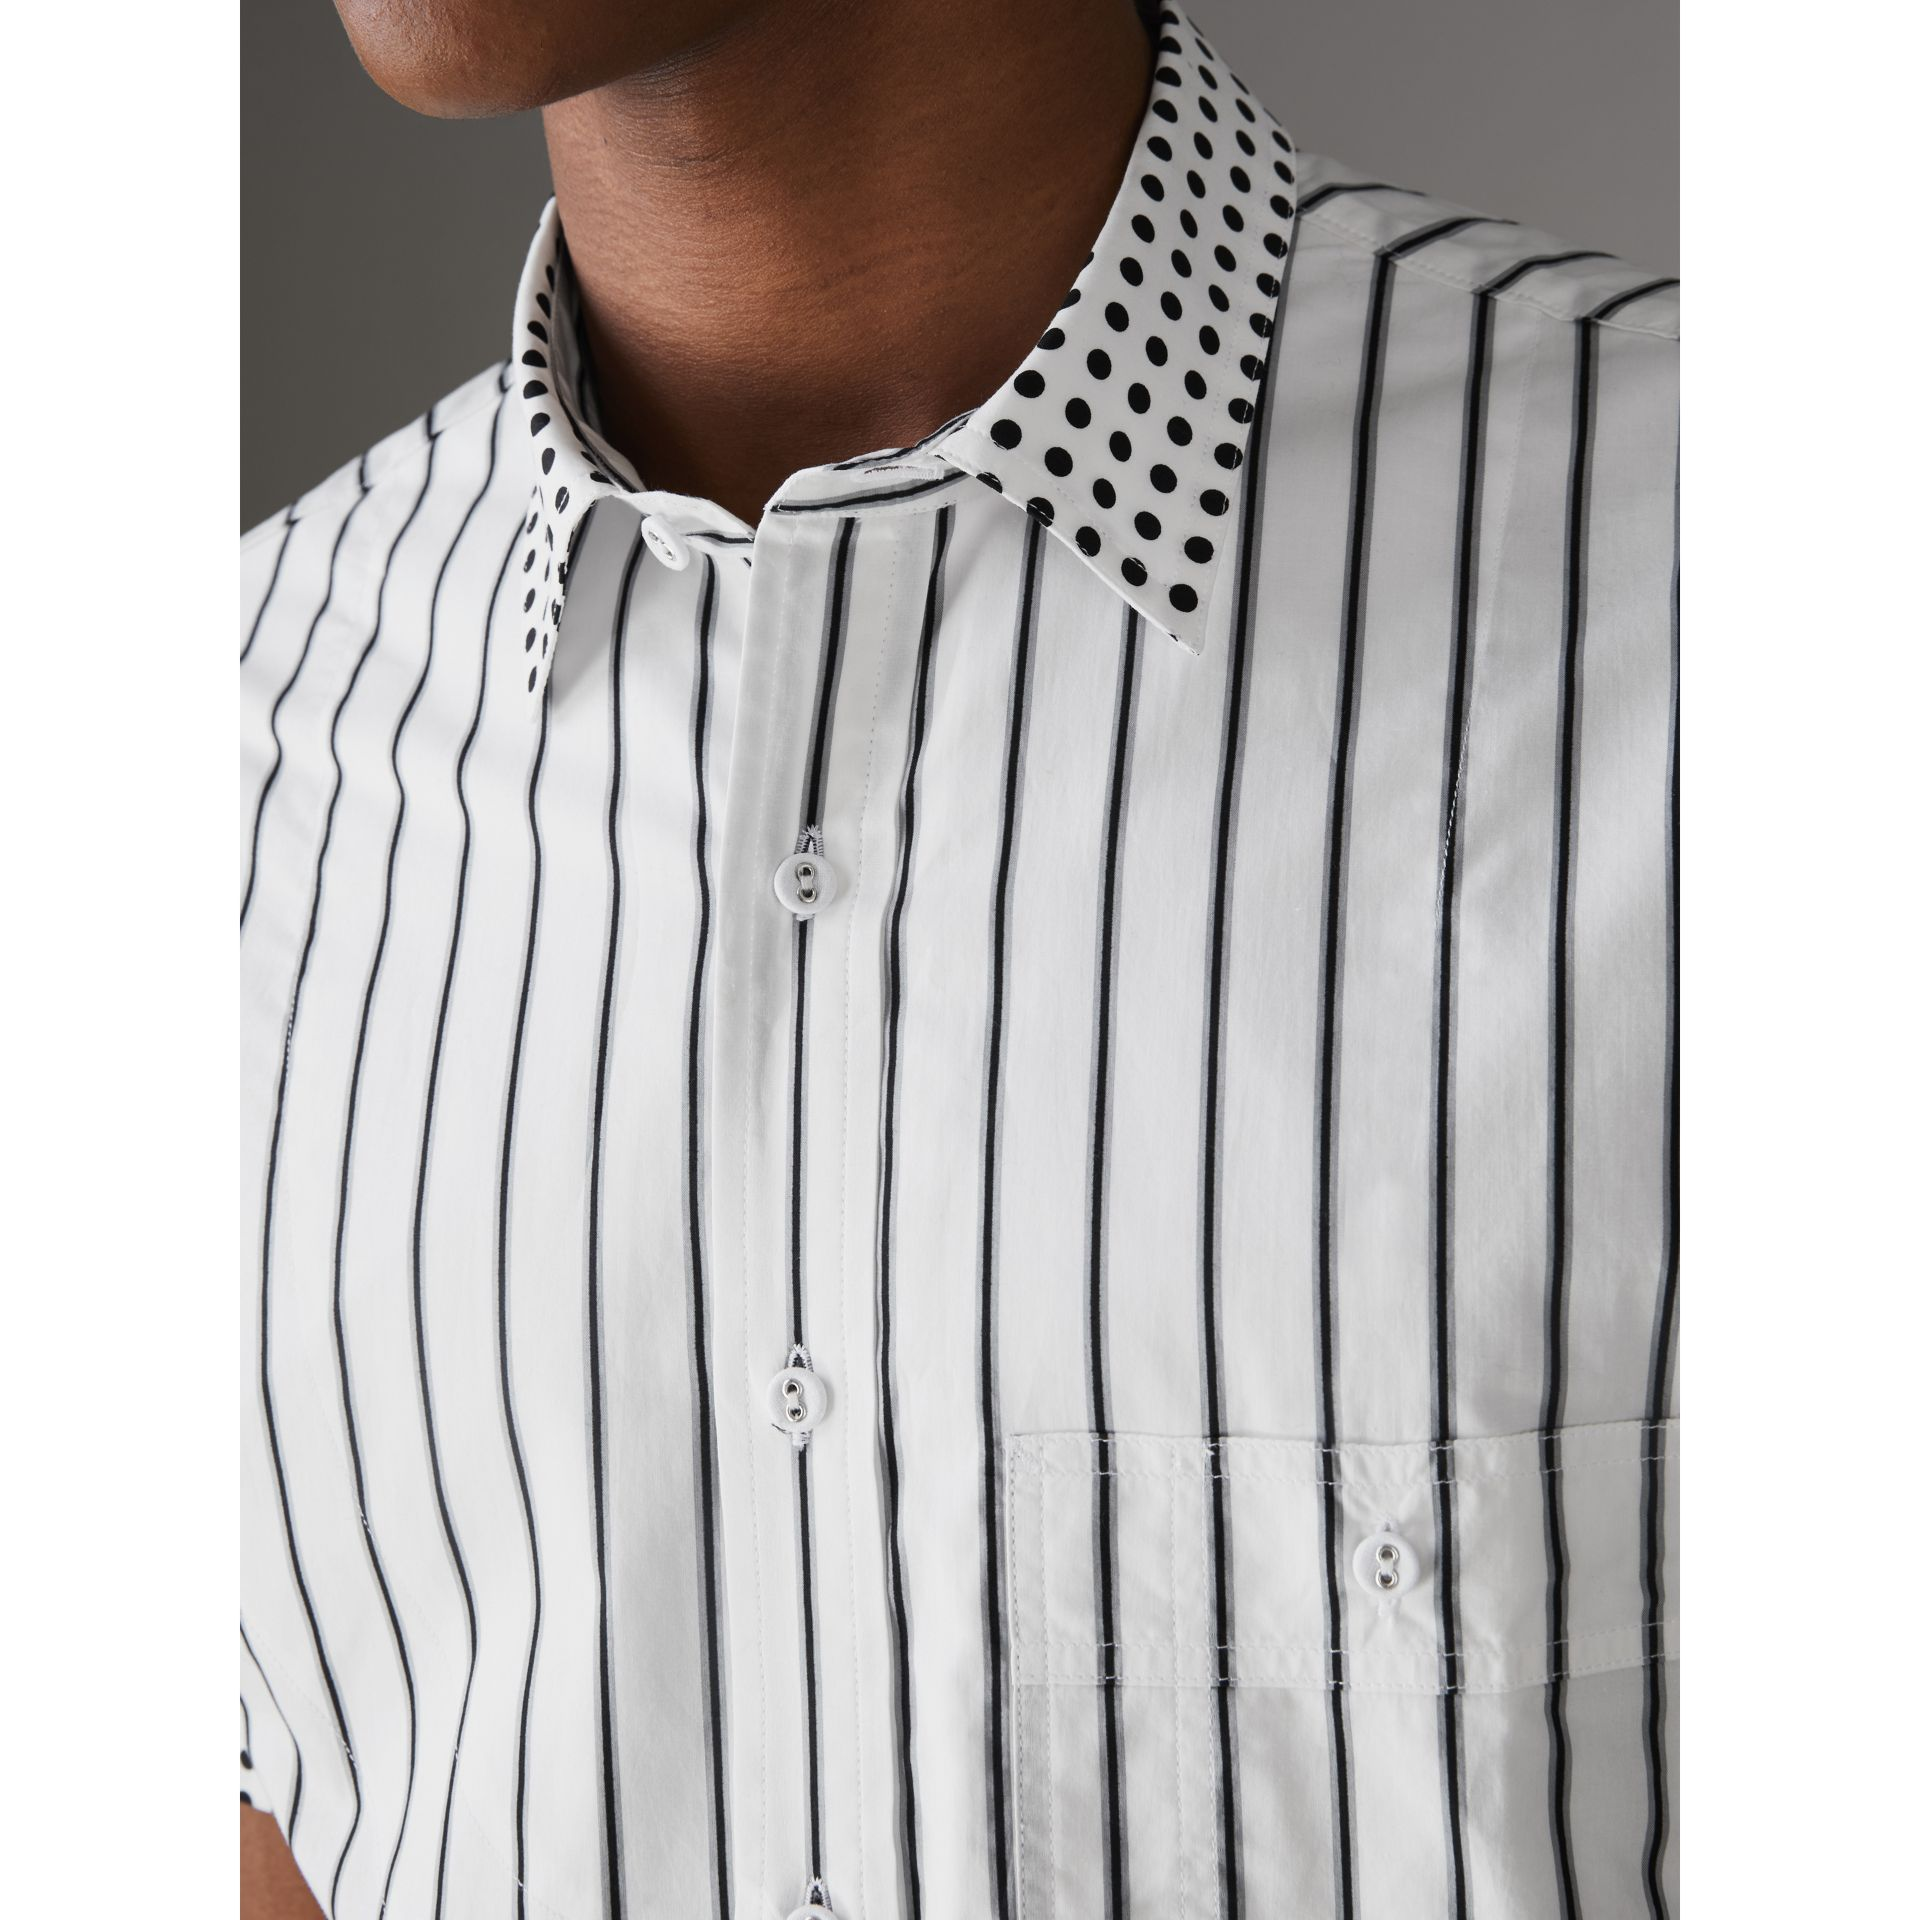 Short-sleeve Stripe and Spot Print Cotton Shirt in Black - Men | Burberry - gallery image 1